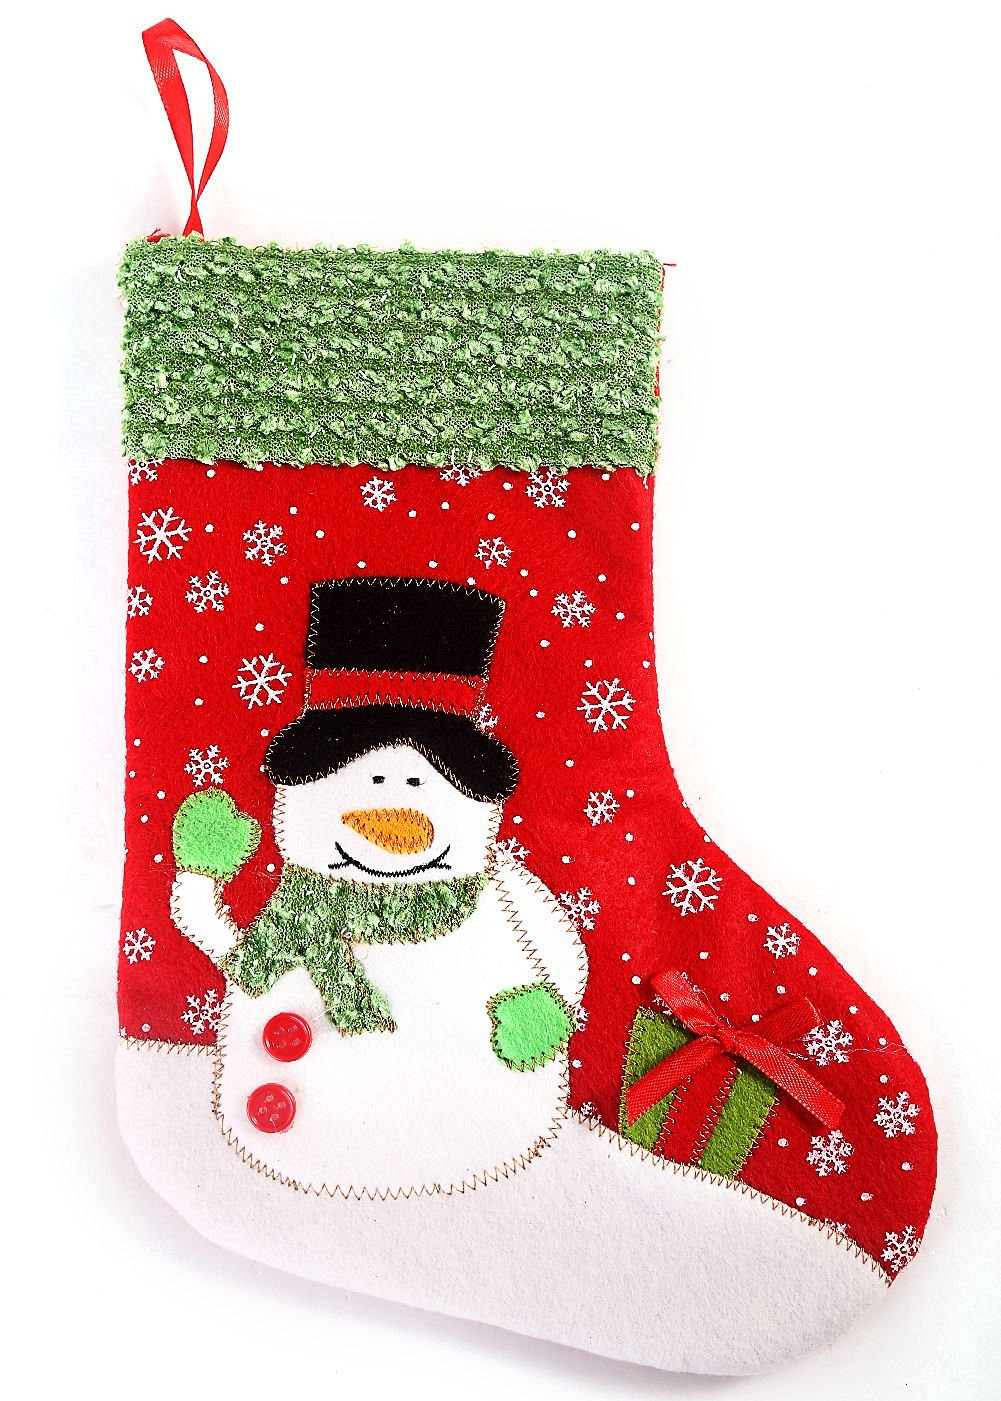 christmas trees indoor stockings decorating christmas snowmanchristmas decorations outdoor santa claus christmas bag gift - Christian Outdoor Christmas Decorations